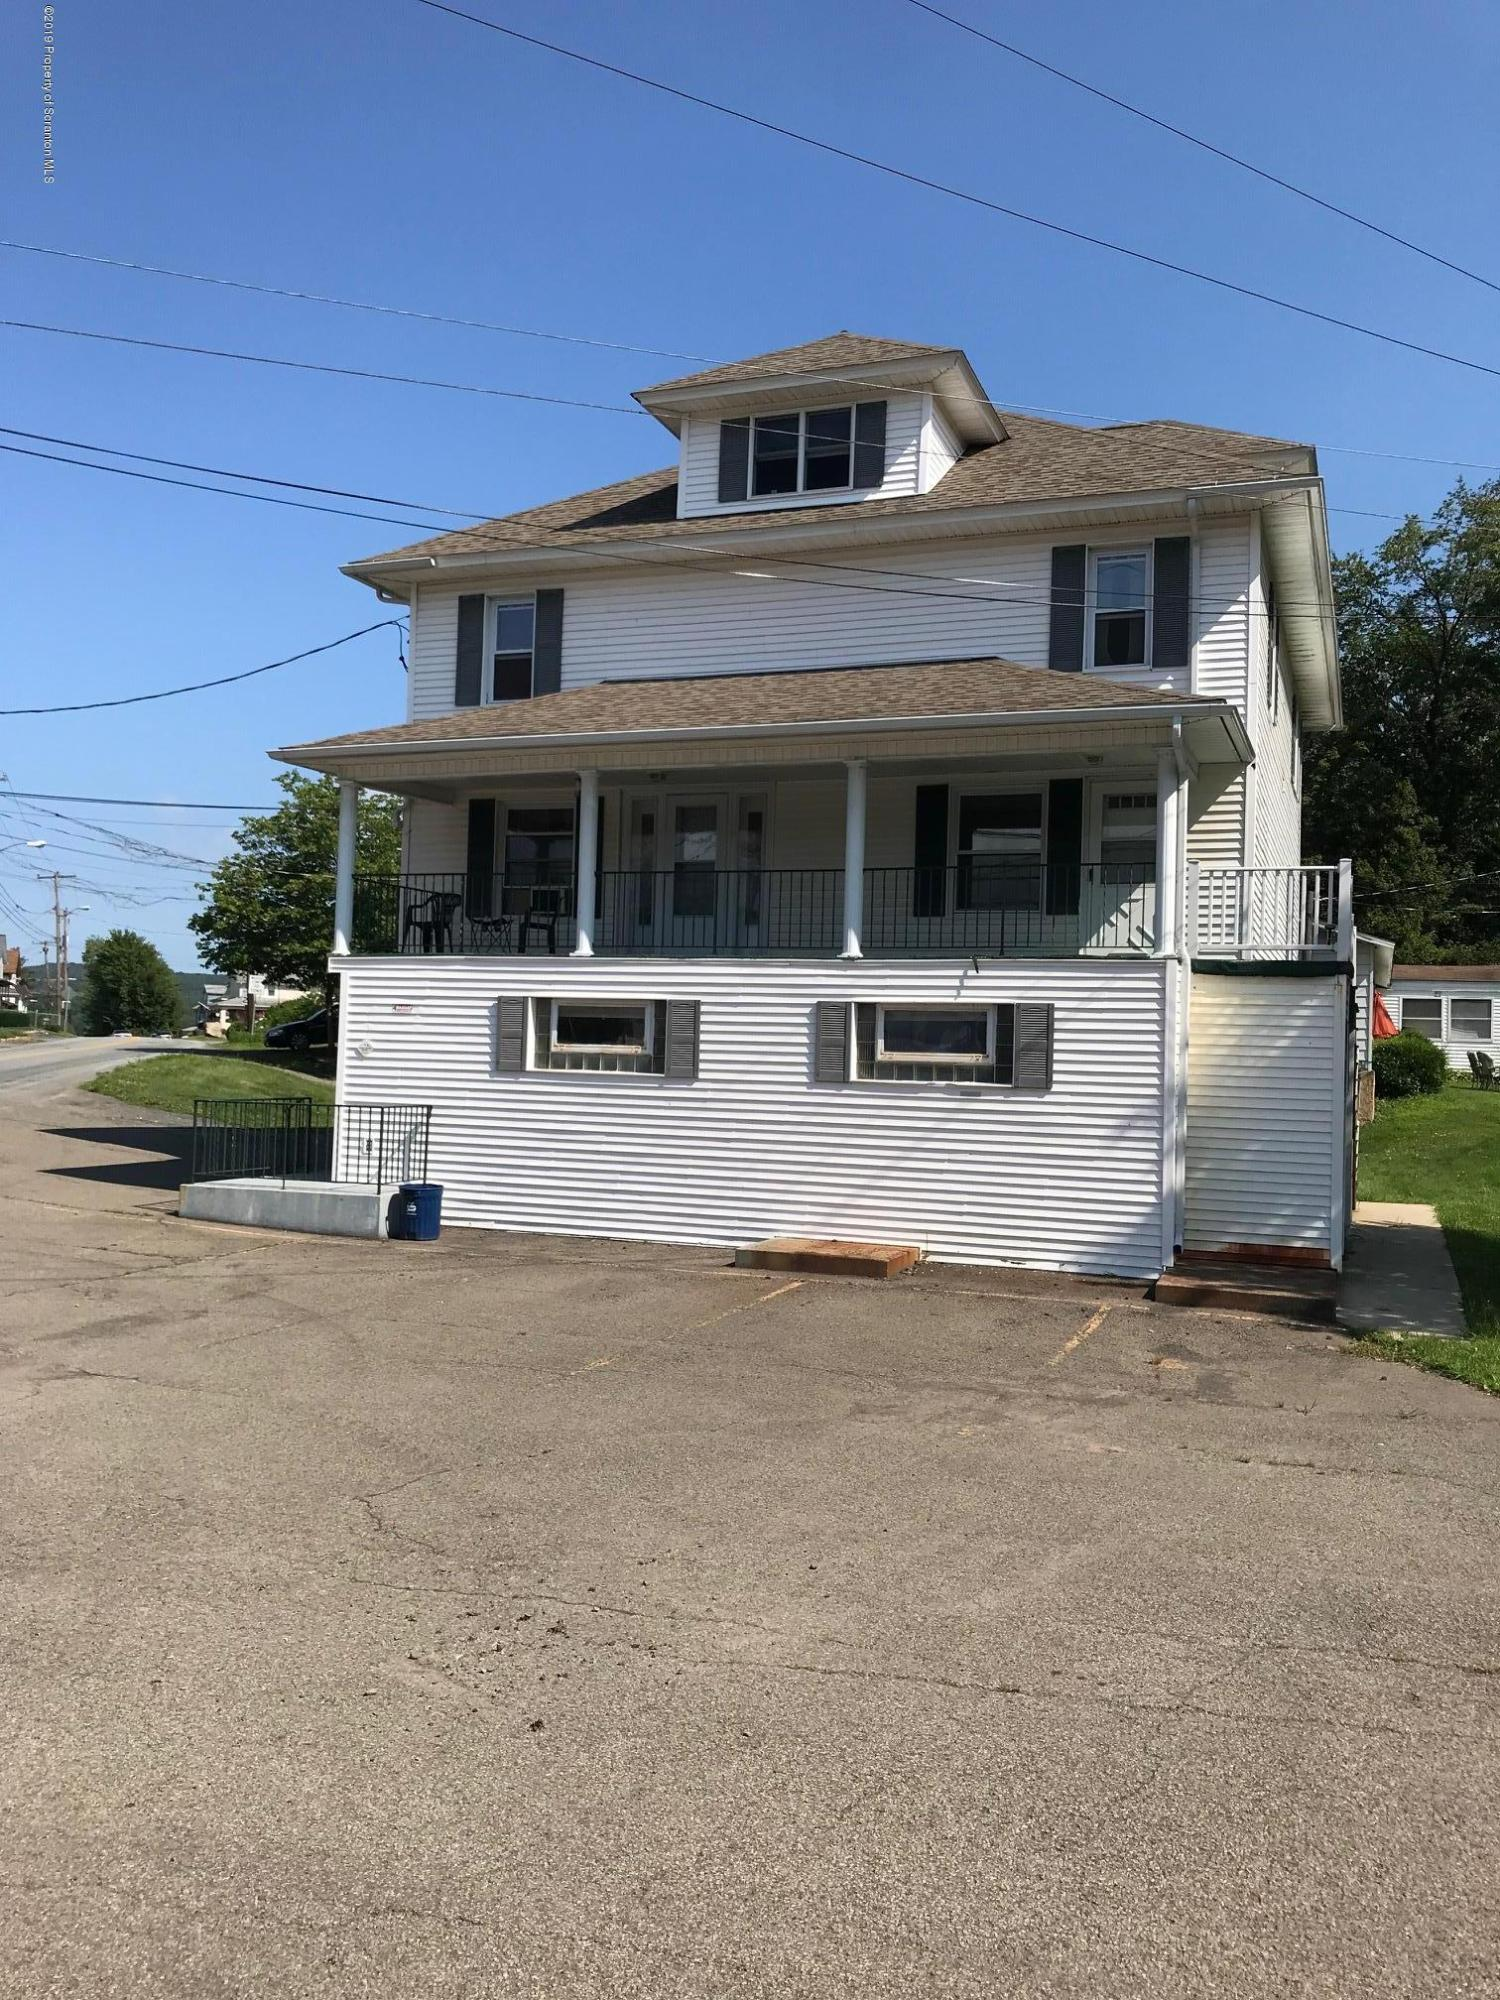 299 & 301 Canaan St, Carbondale, Pennsylvania 18407, ,Multi-Family,For Sale,Canaan,19-3914